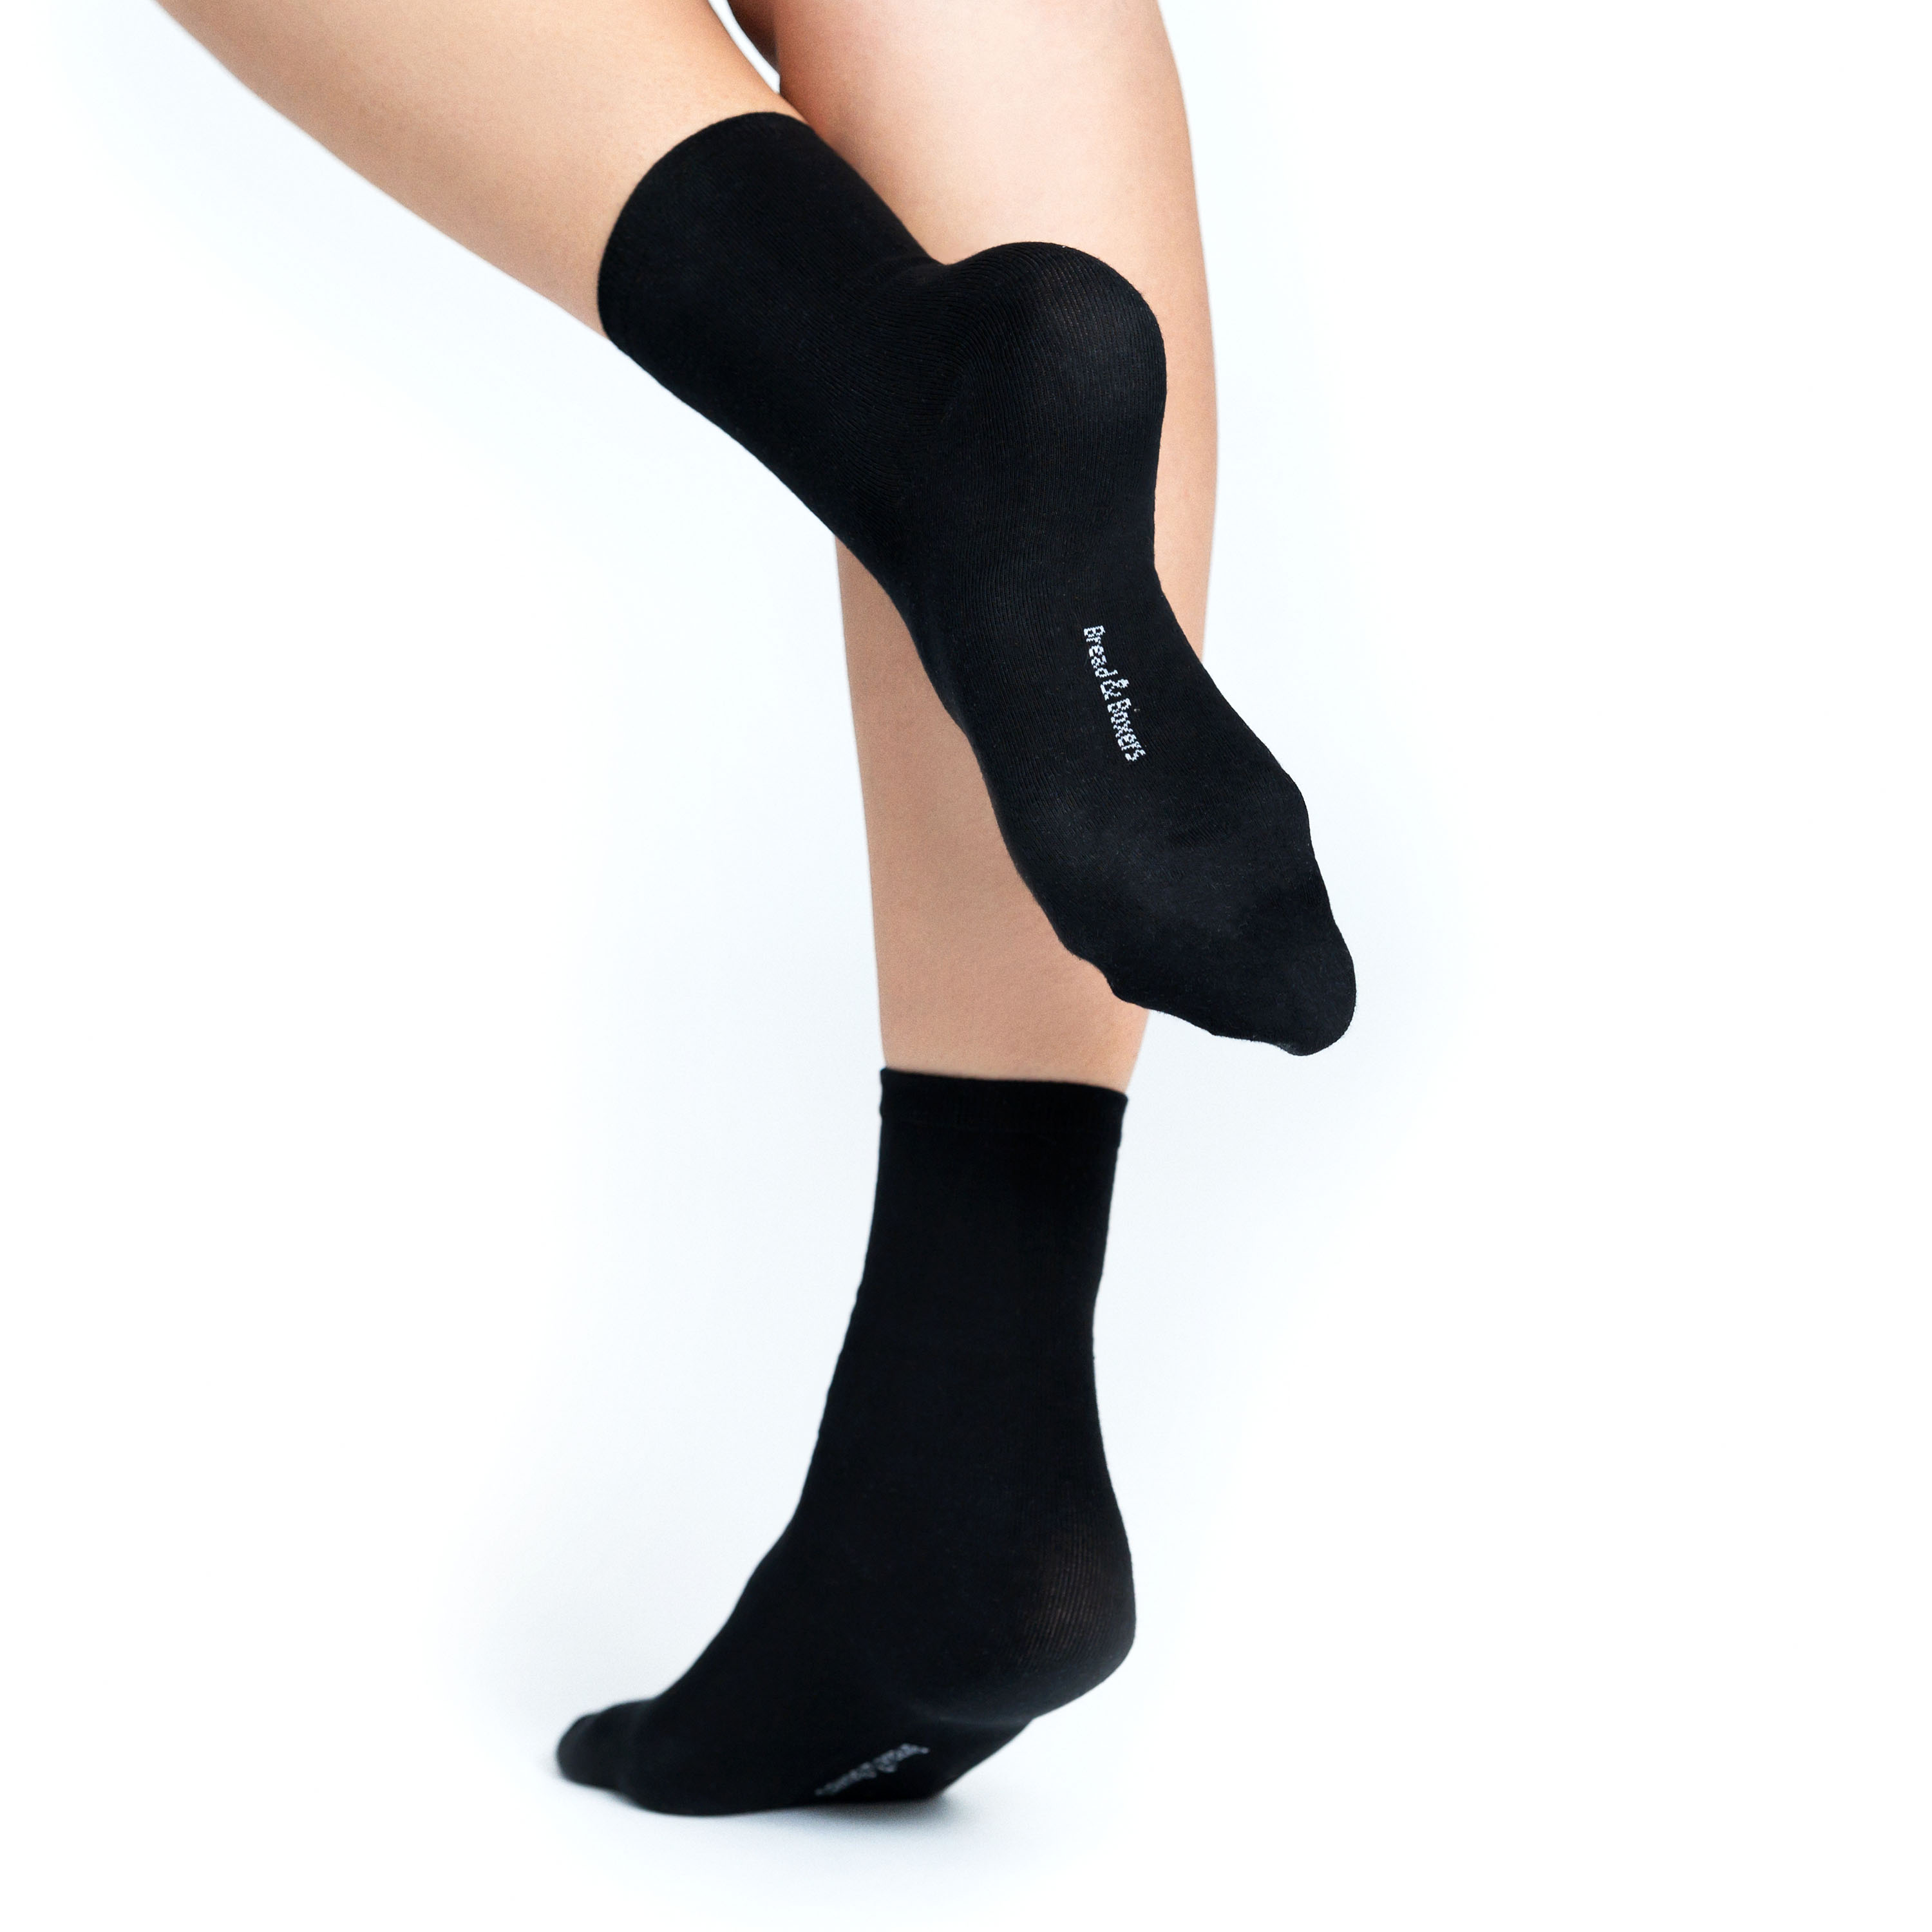 802-02_Socks_black_1